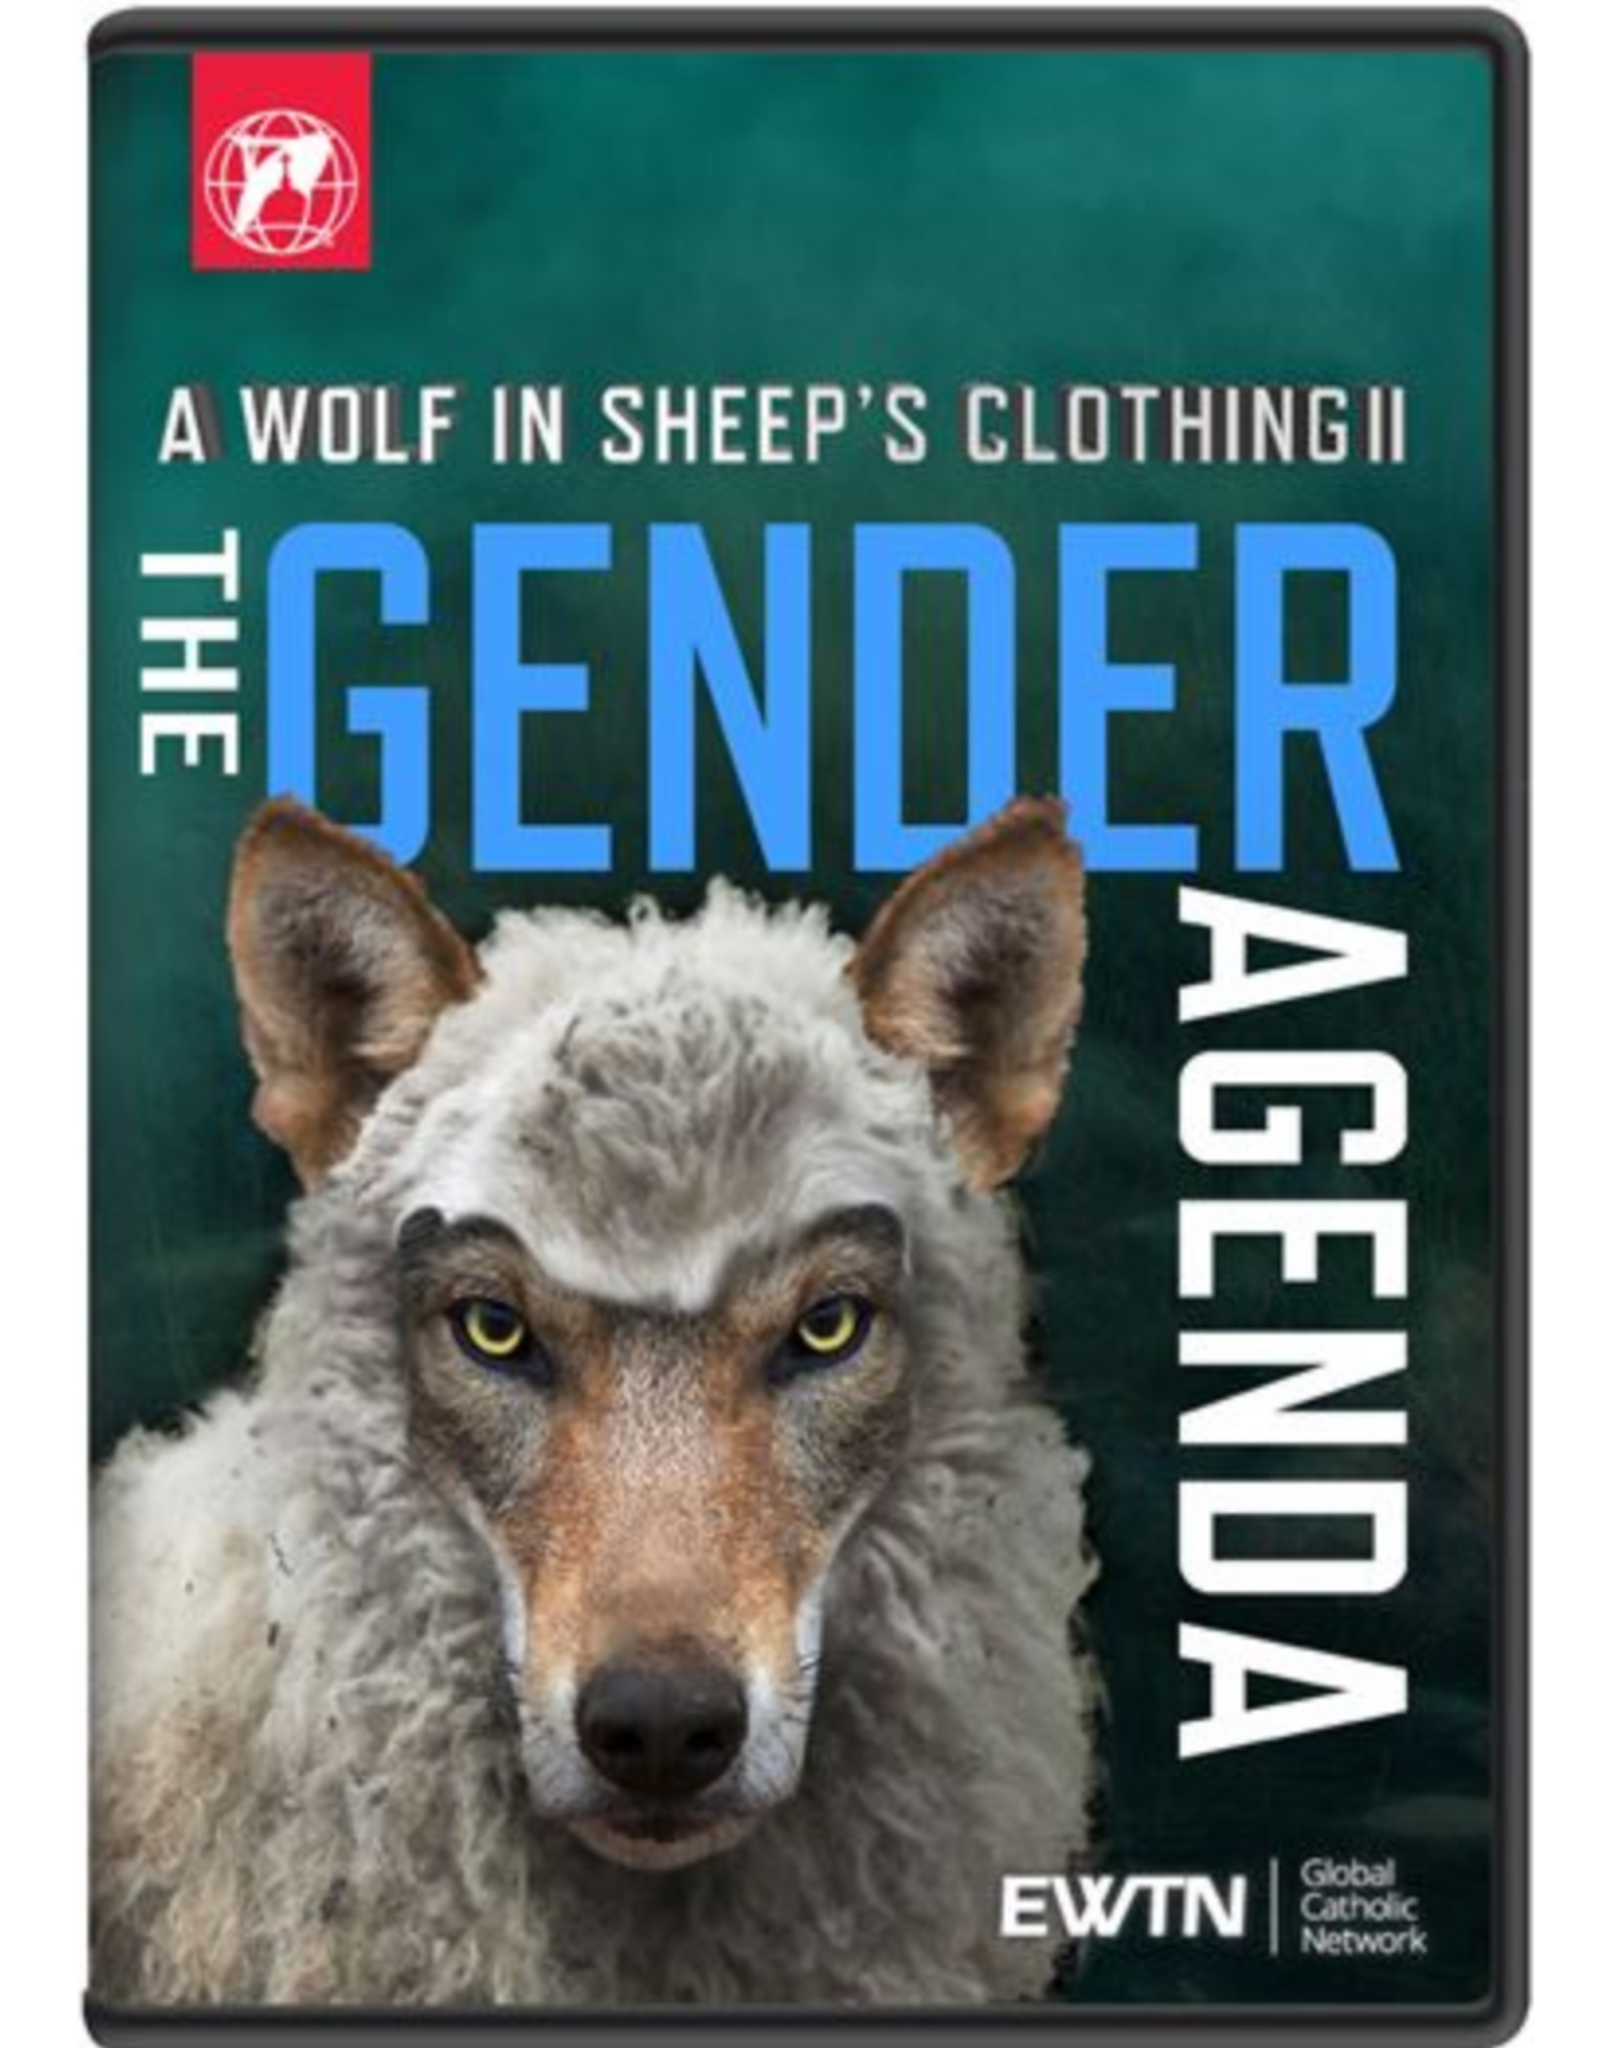 Wolf in Sheep's Clothing II: The Gender Agenda